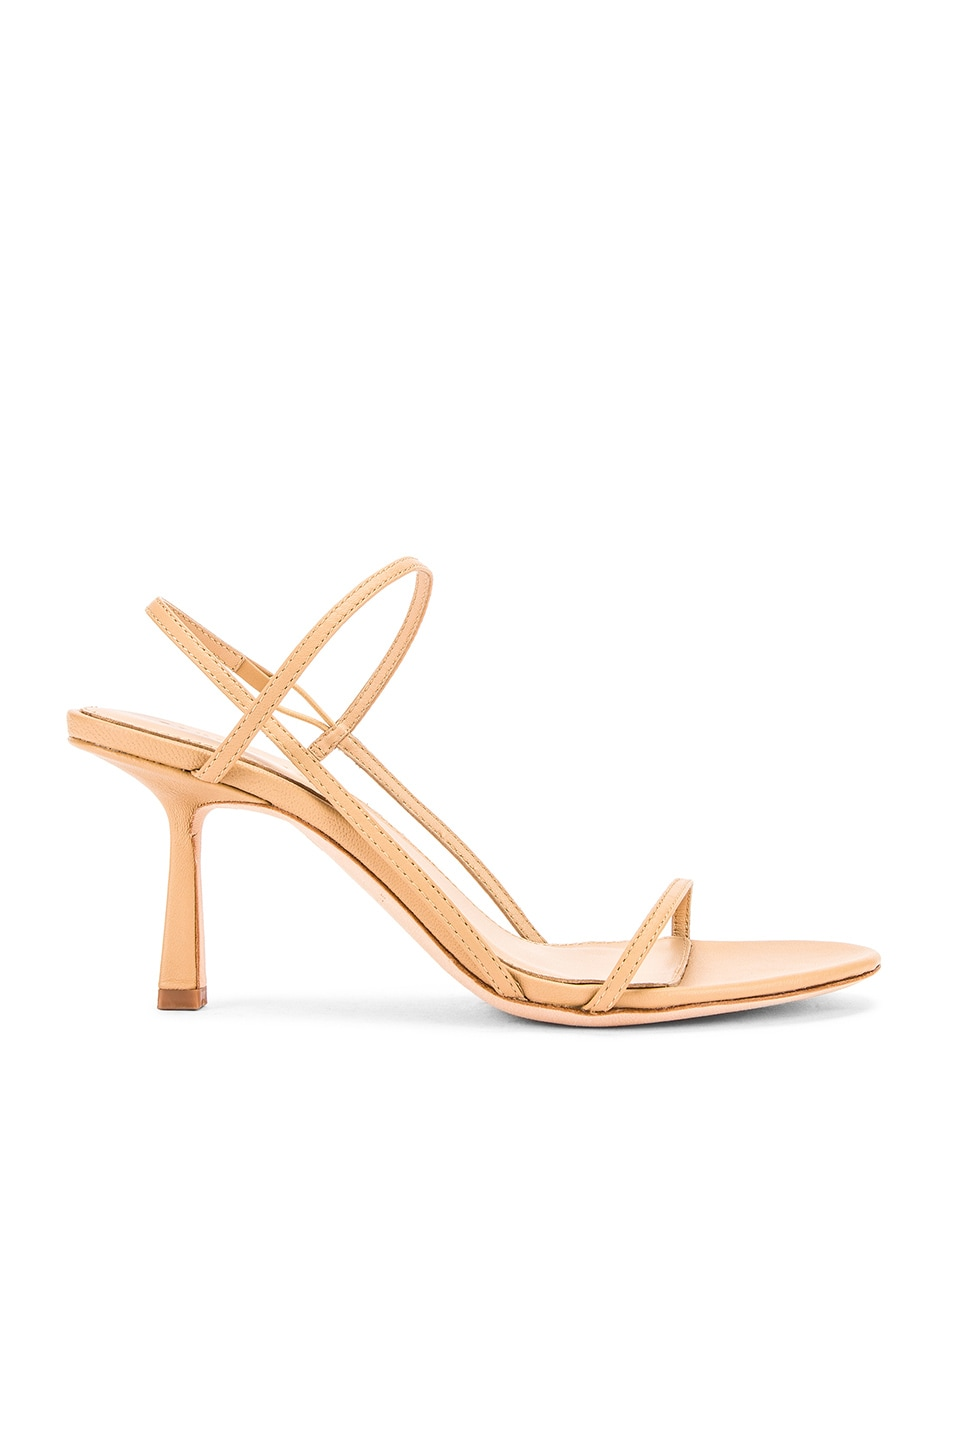 Image 1 of Studio Amelia 2.3 Slingback Heel in Nude Nappa Leather